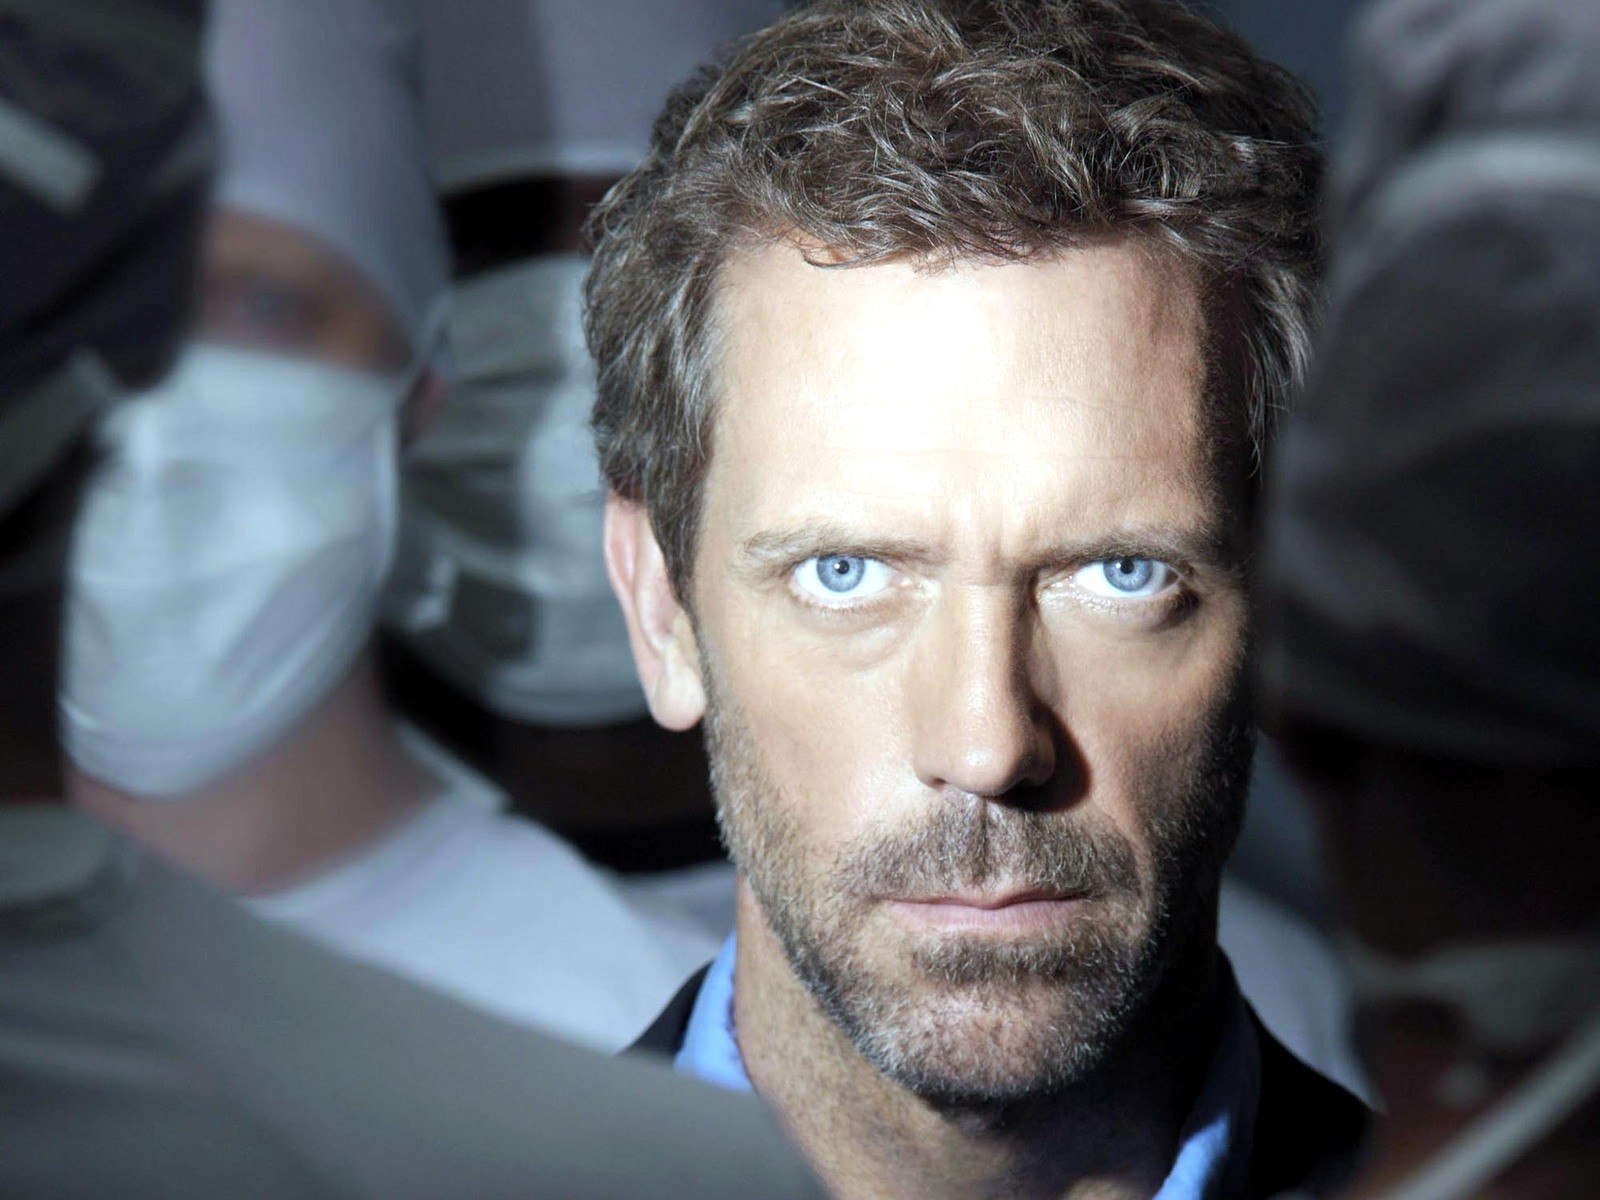 http://2.bp.blogspot.com/-O6Lq9vH18Xw/TYKvia7c1_I/AAAAAAAAAL0/QQf90VhiOOM/s1600/house-md-hugh-laurie-dr-gregory-house-1481.jpg